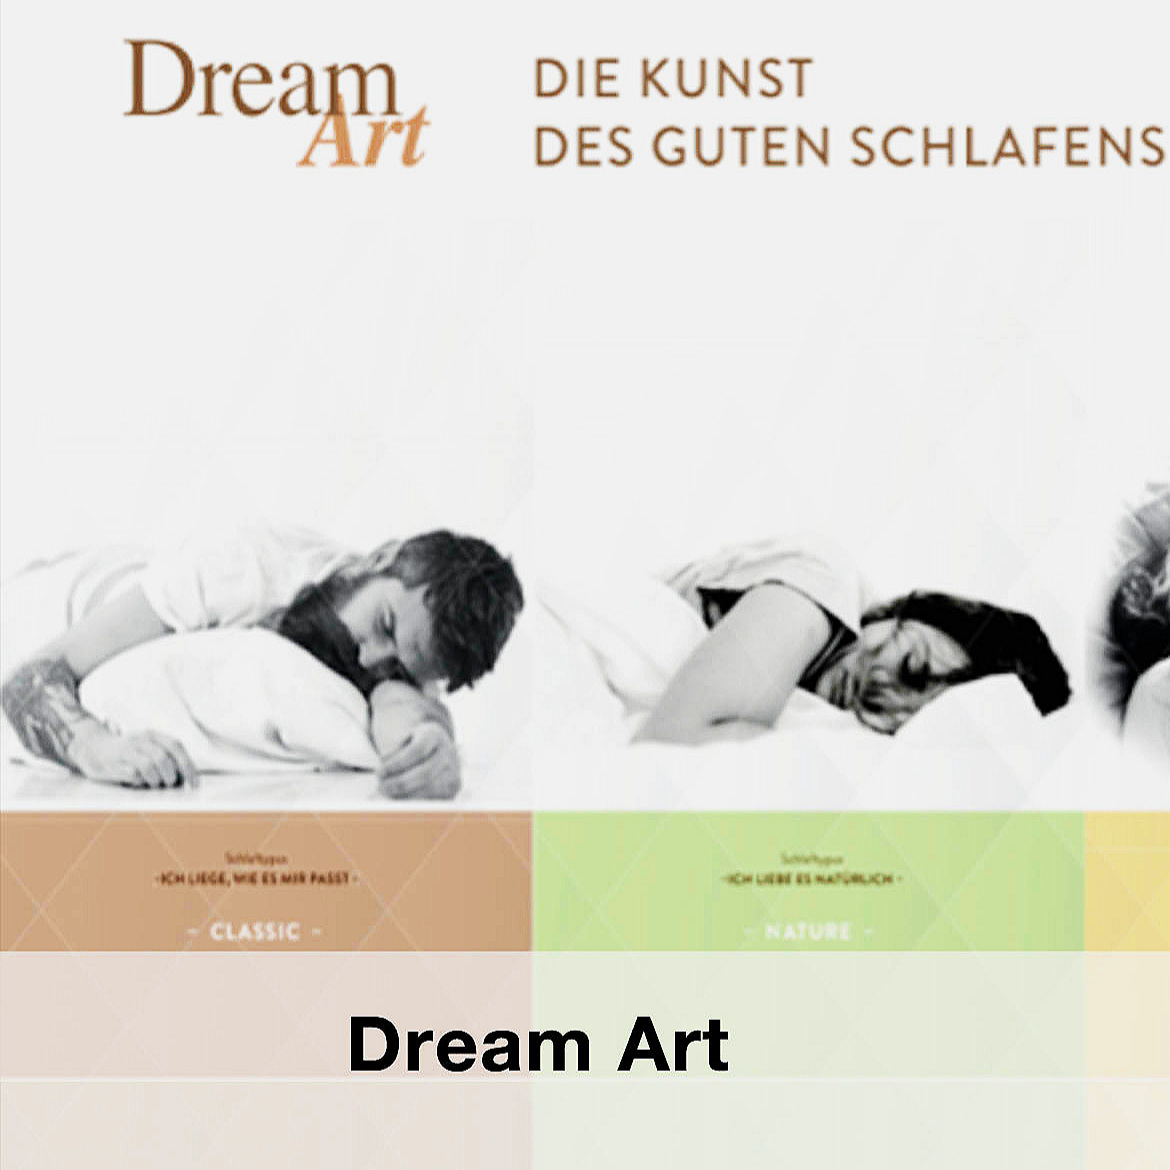 Dream Art Relaunch by thinknewgroup